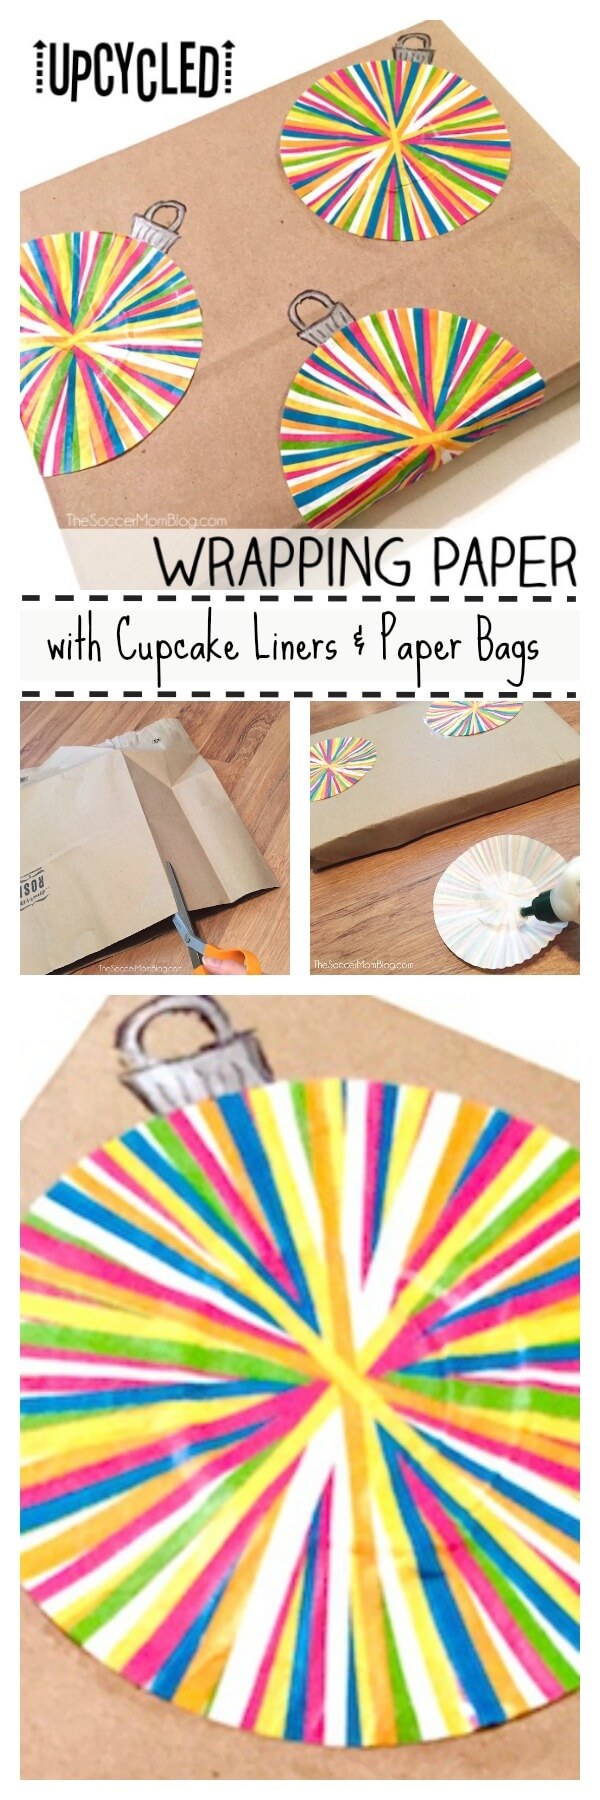 "This upcycled wrapping paper can be made entirely with things found in your kitchen! An easy and ""green"" Christmas DIY craft that's perfect to do with kids!"